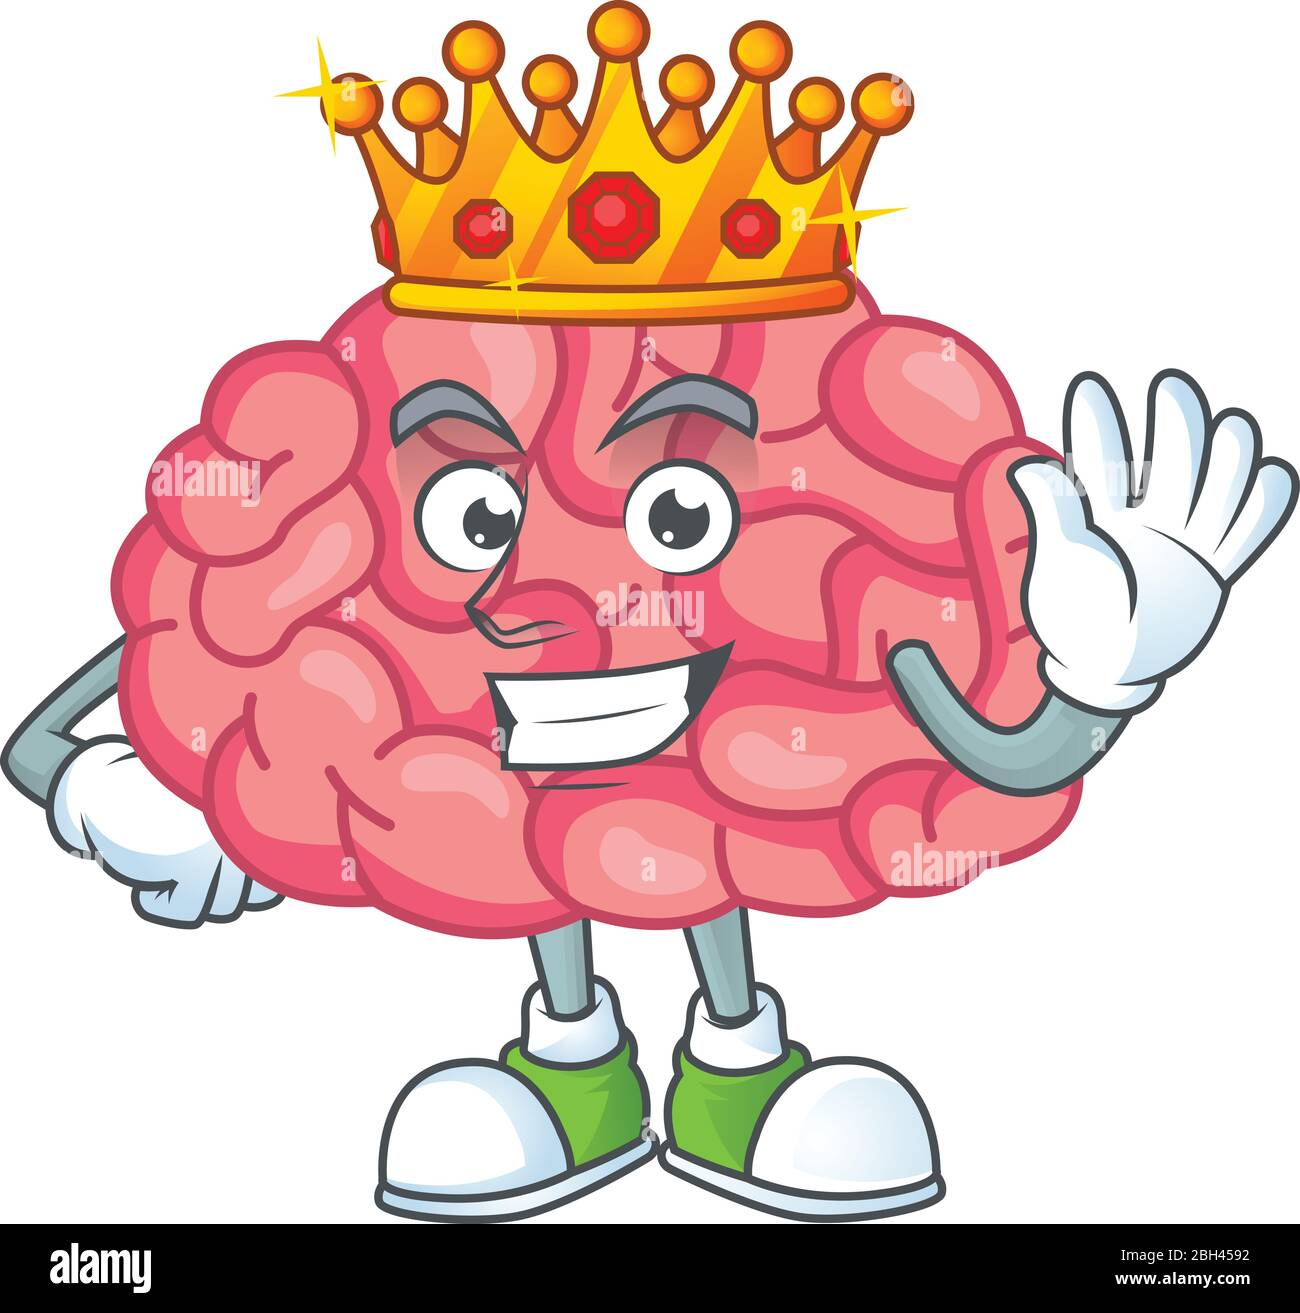 The Charismatic King Of Brain Cartoon Character Design Wearing Gold Crown Stock Vector Image Art Alamy Get commercial use crown graphics and vector designs. https www alamy com the charismatic king of brain cartoon character design wearing gold crown image354748494 html